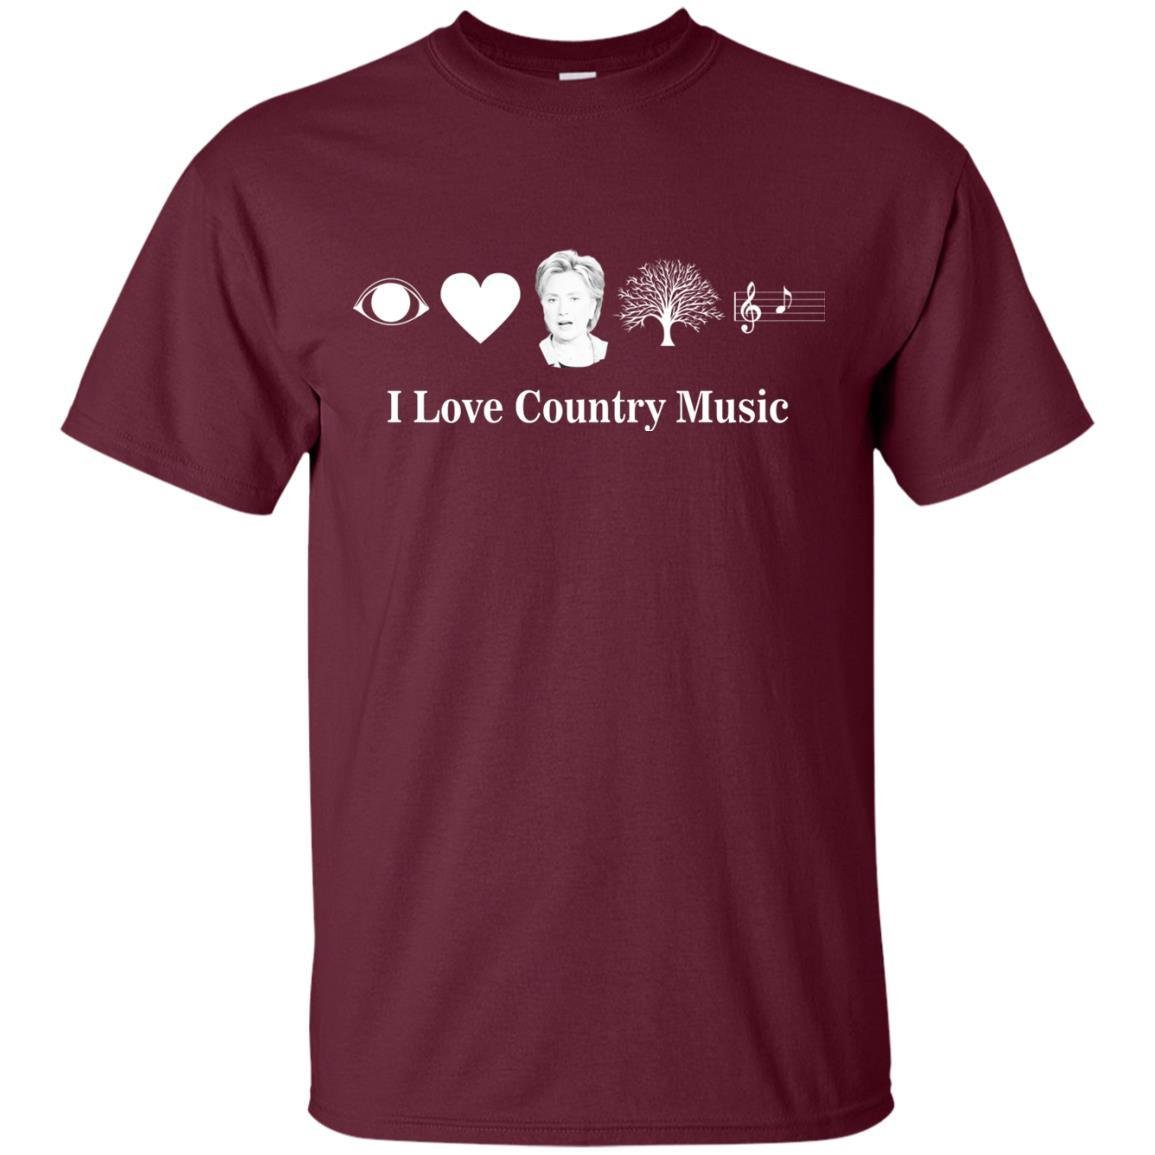 I Love Country Music Hillary T-Shirt - Funny Political Shirt